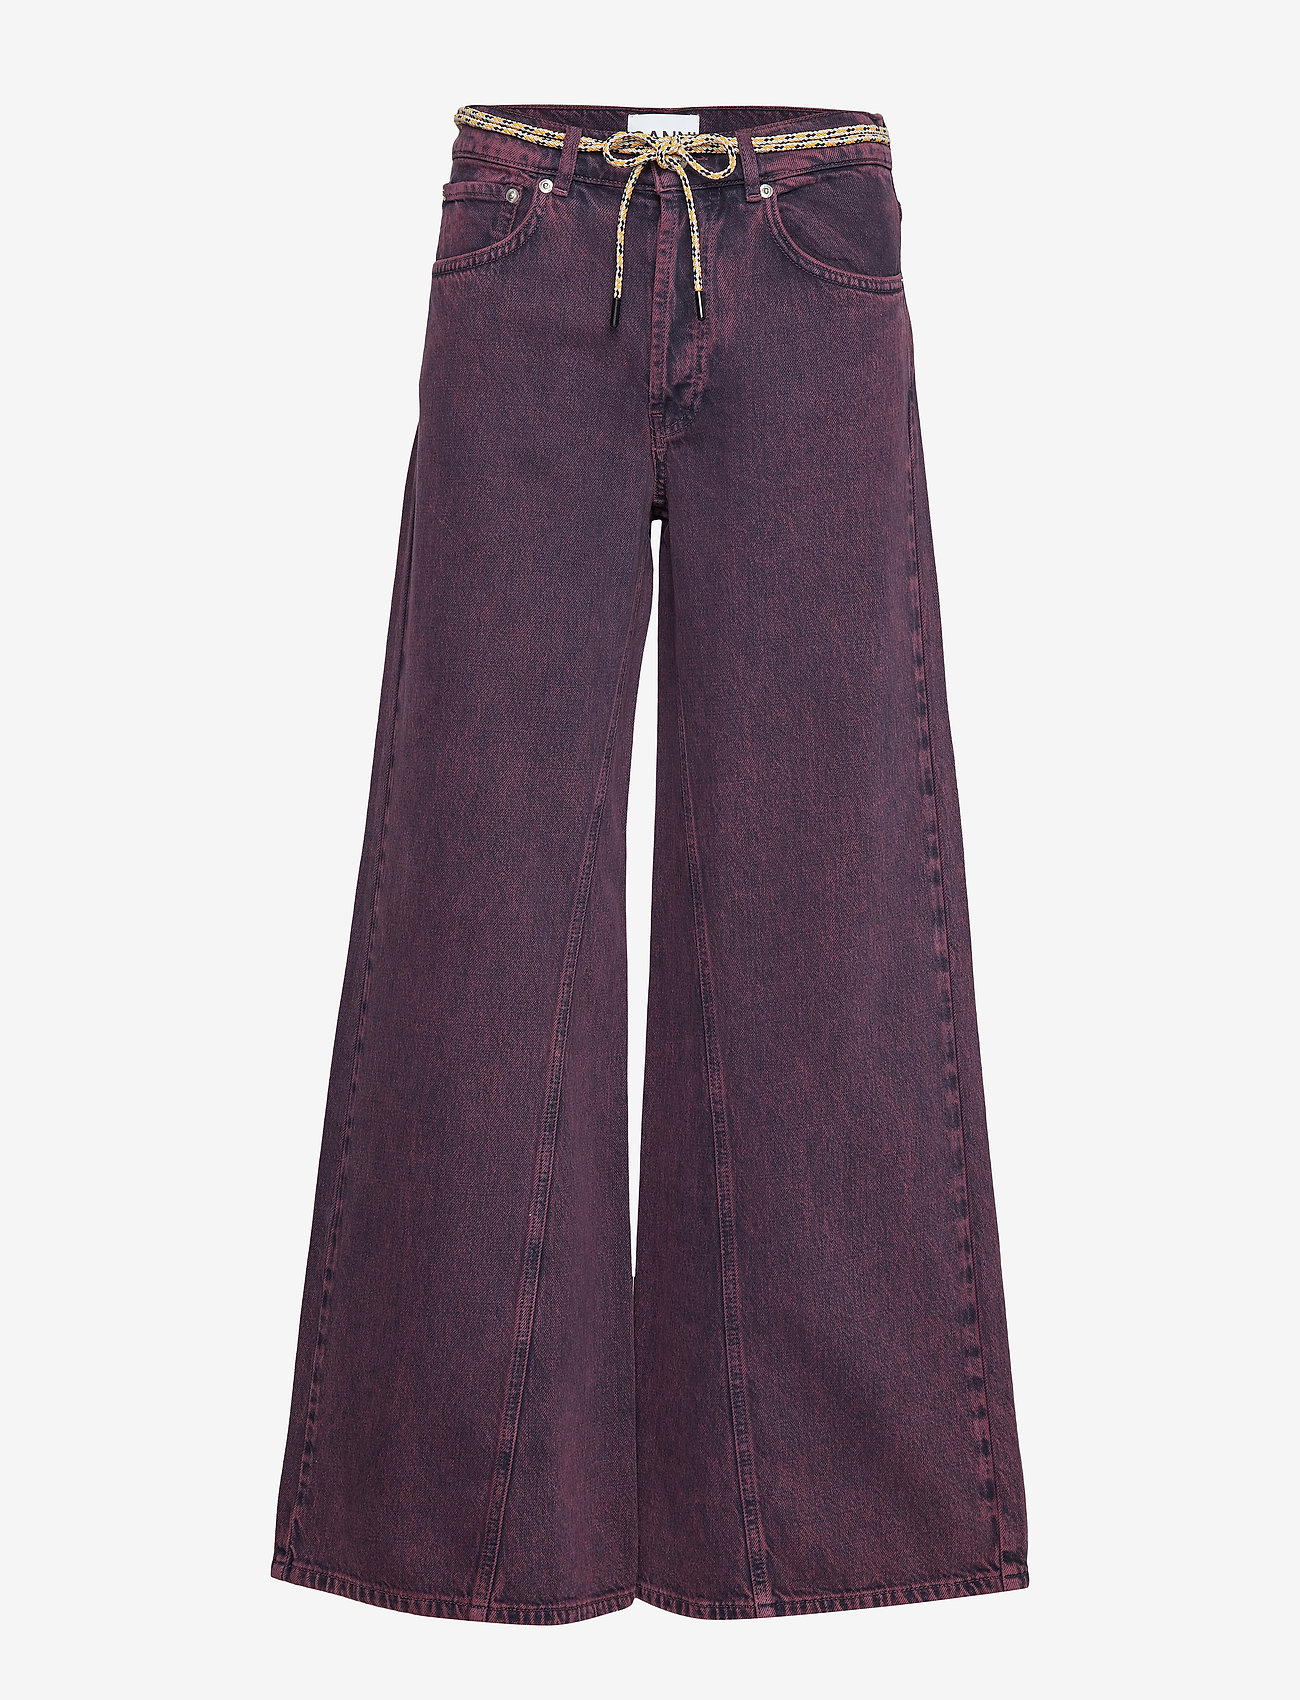 Washed Denim (Port Royale) (1259.40 kr) - Ganni